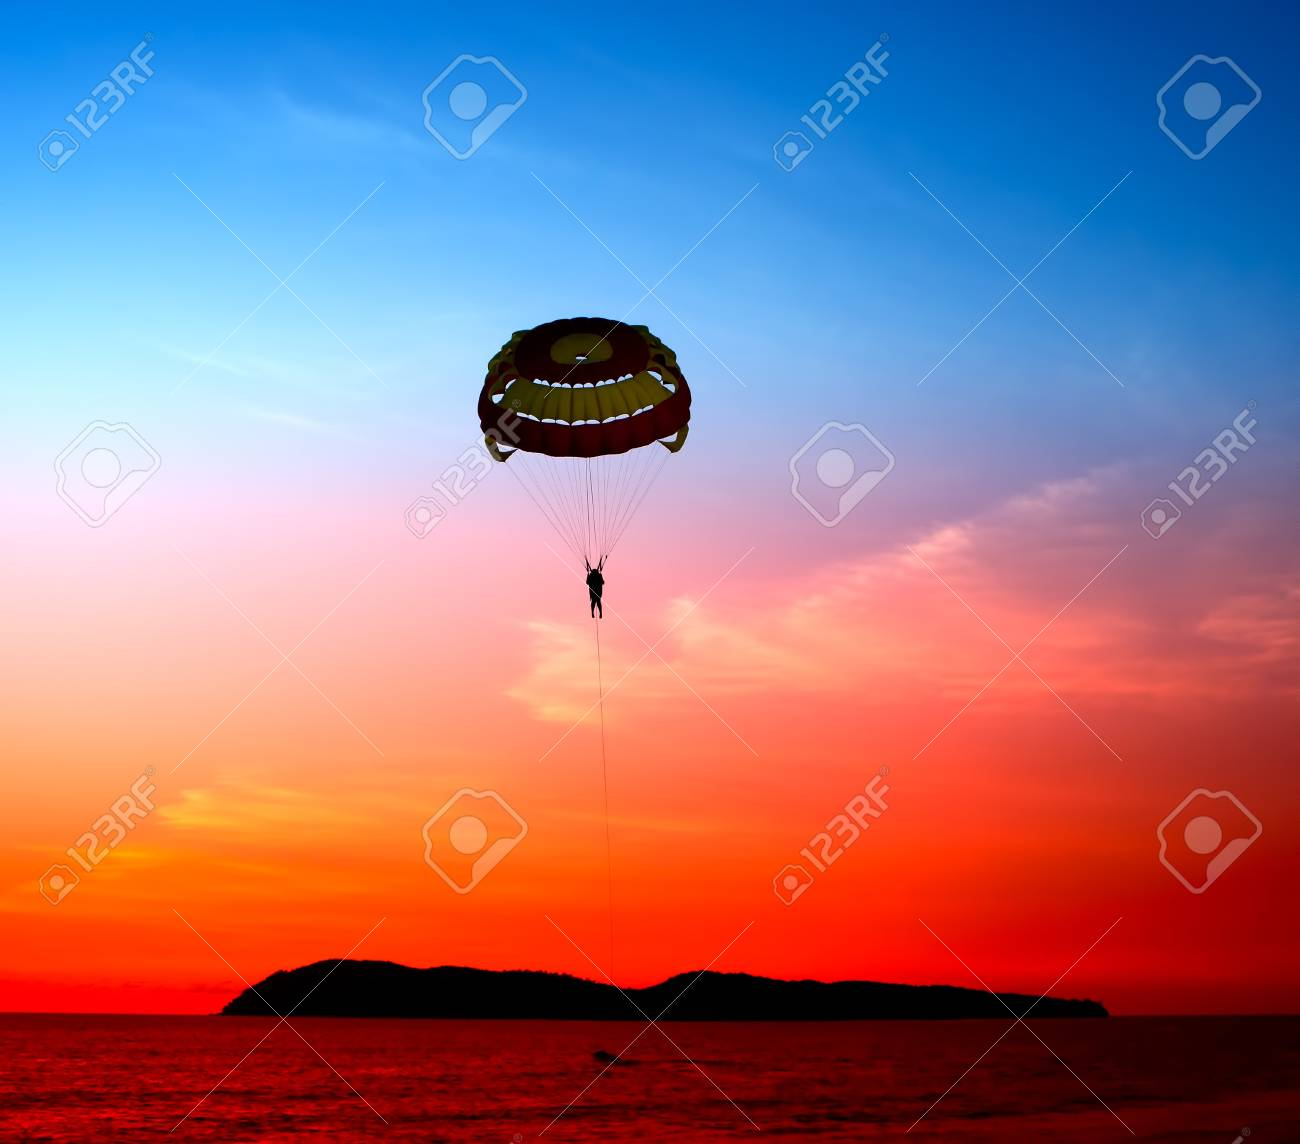 Silhouette of a parasailor at sunset Stock Photo - 10926823